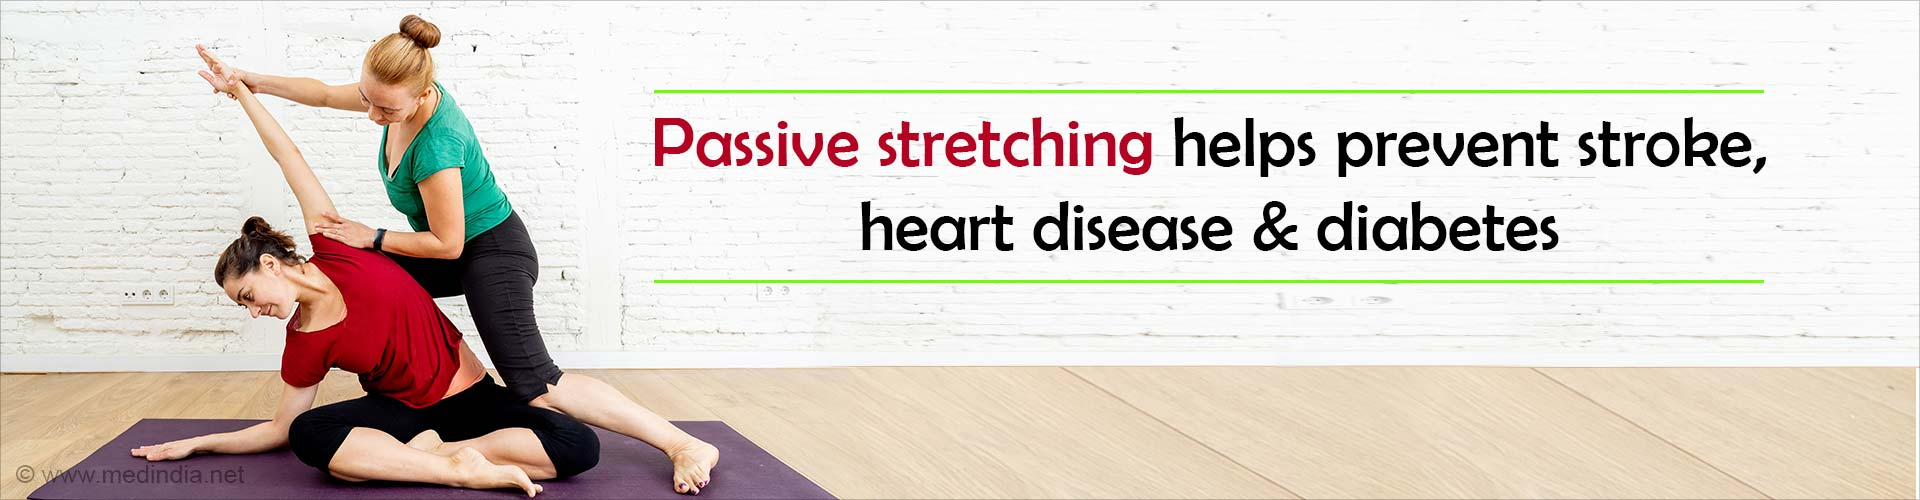 Stretch Your Legs to Keep Heart Disease at Bay